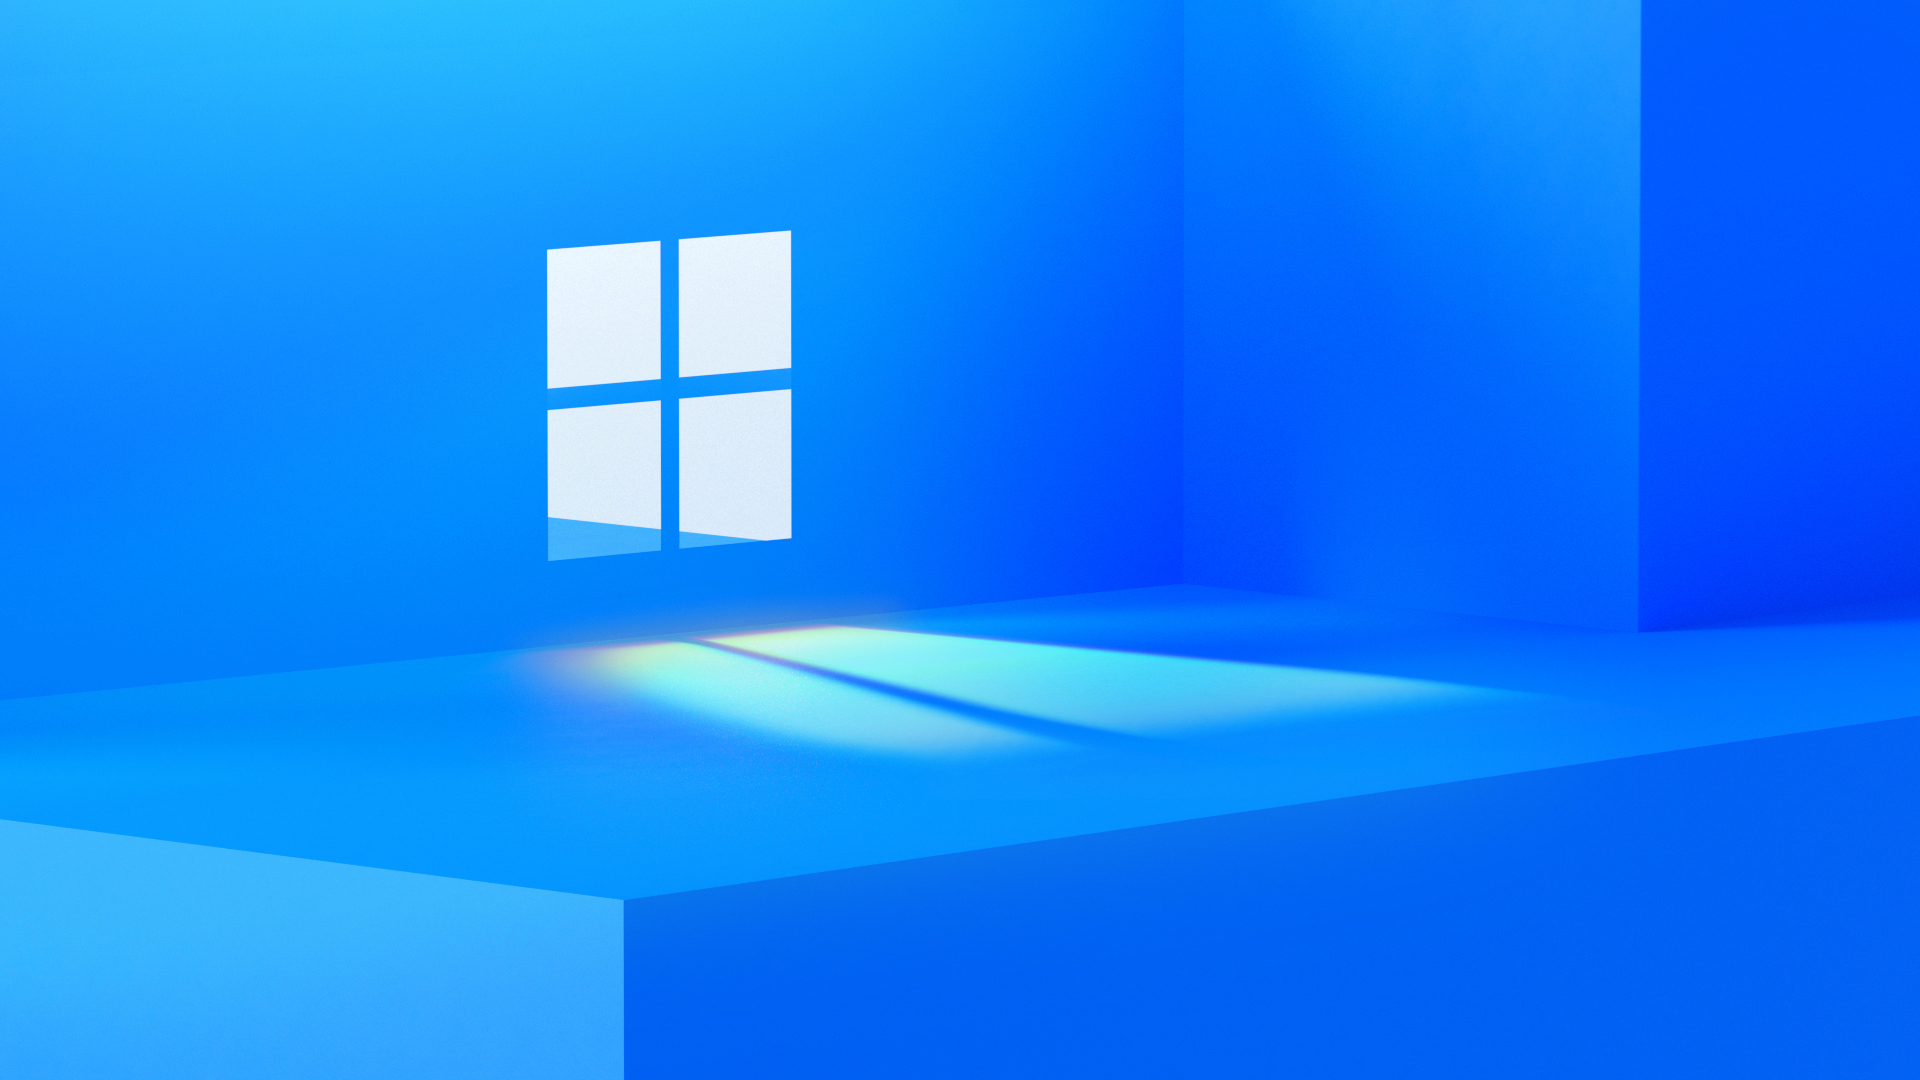 Next generation of Windows is here